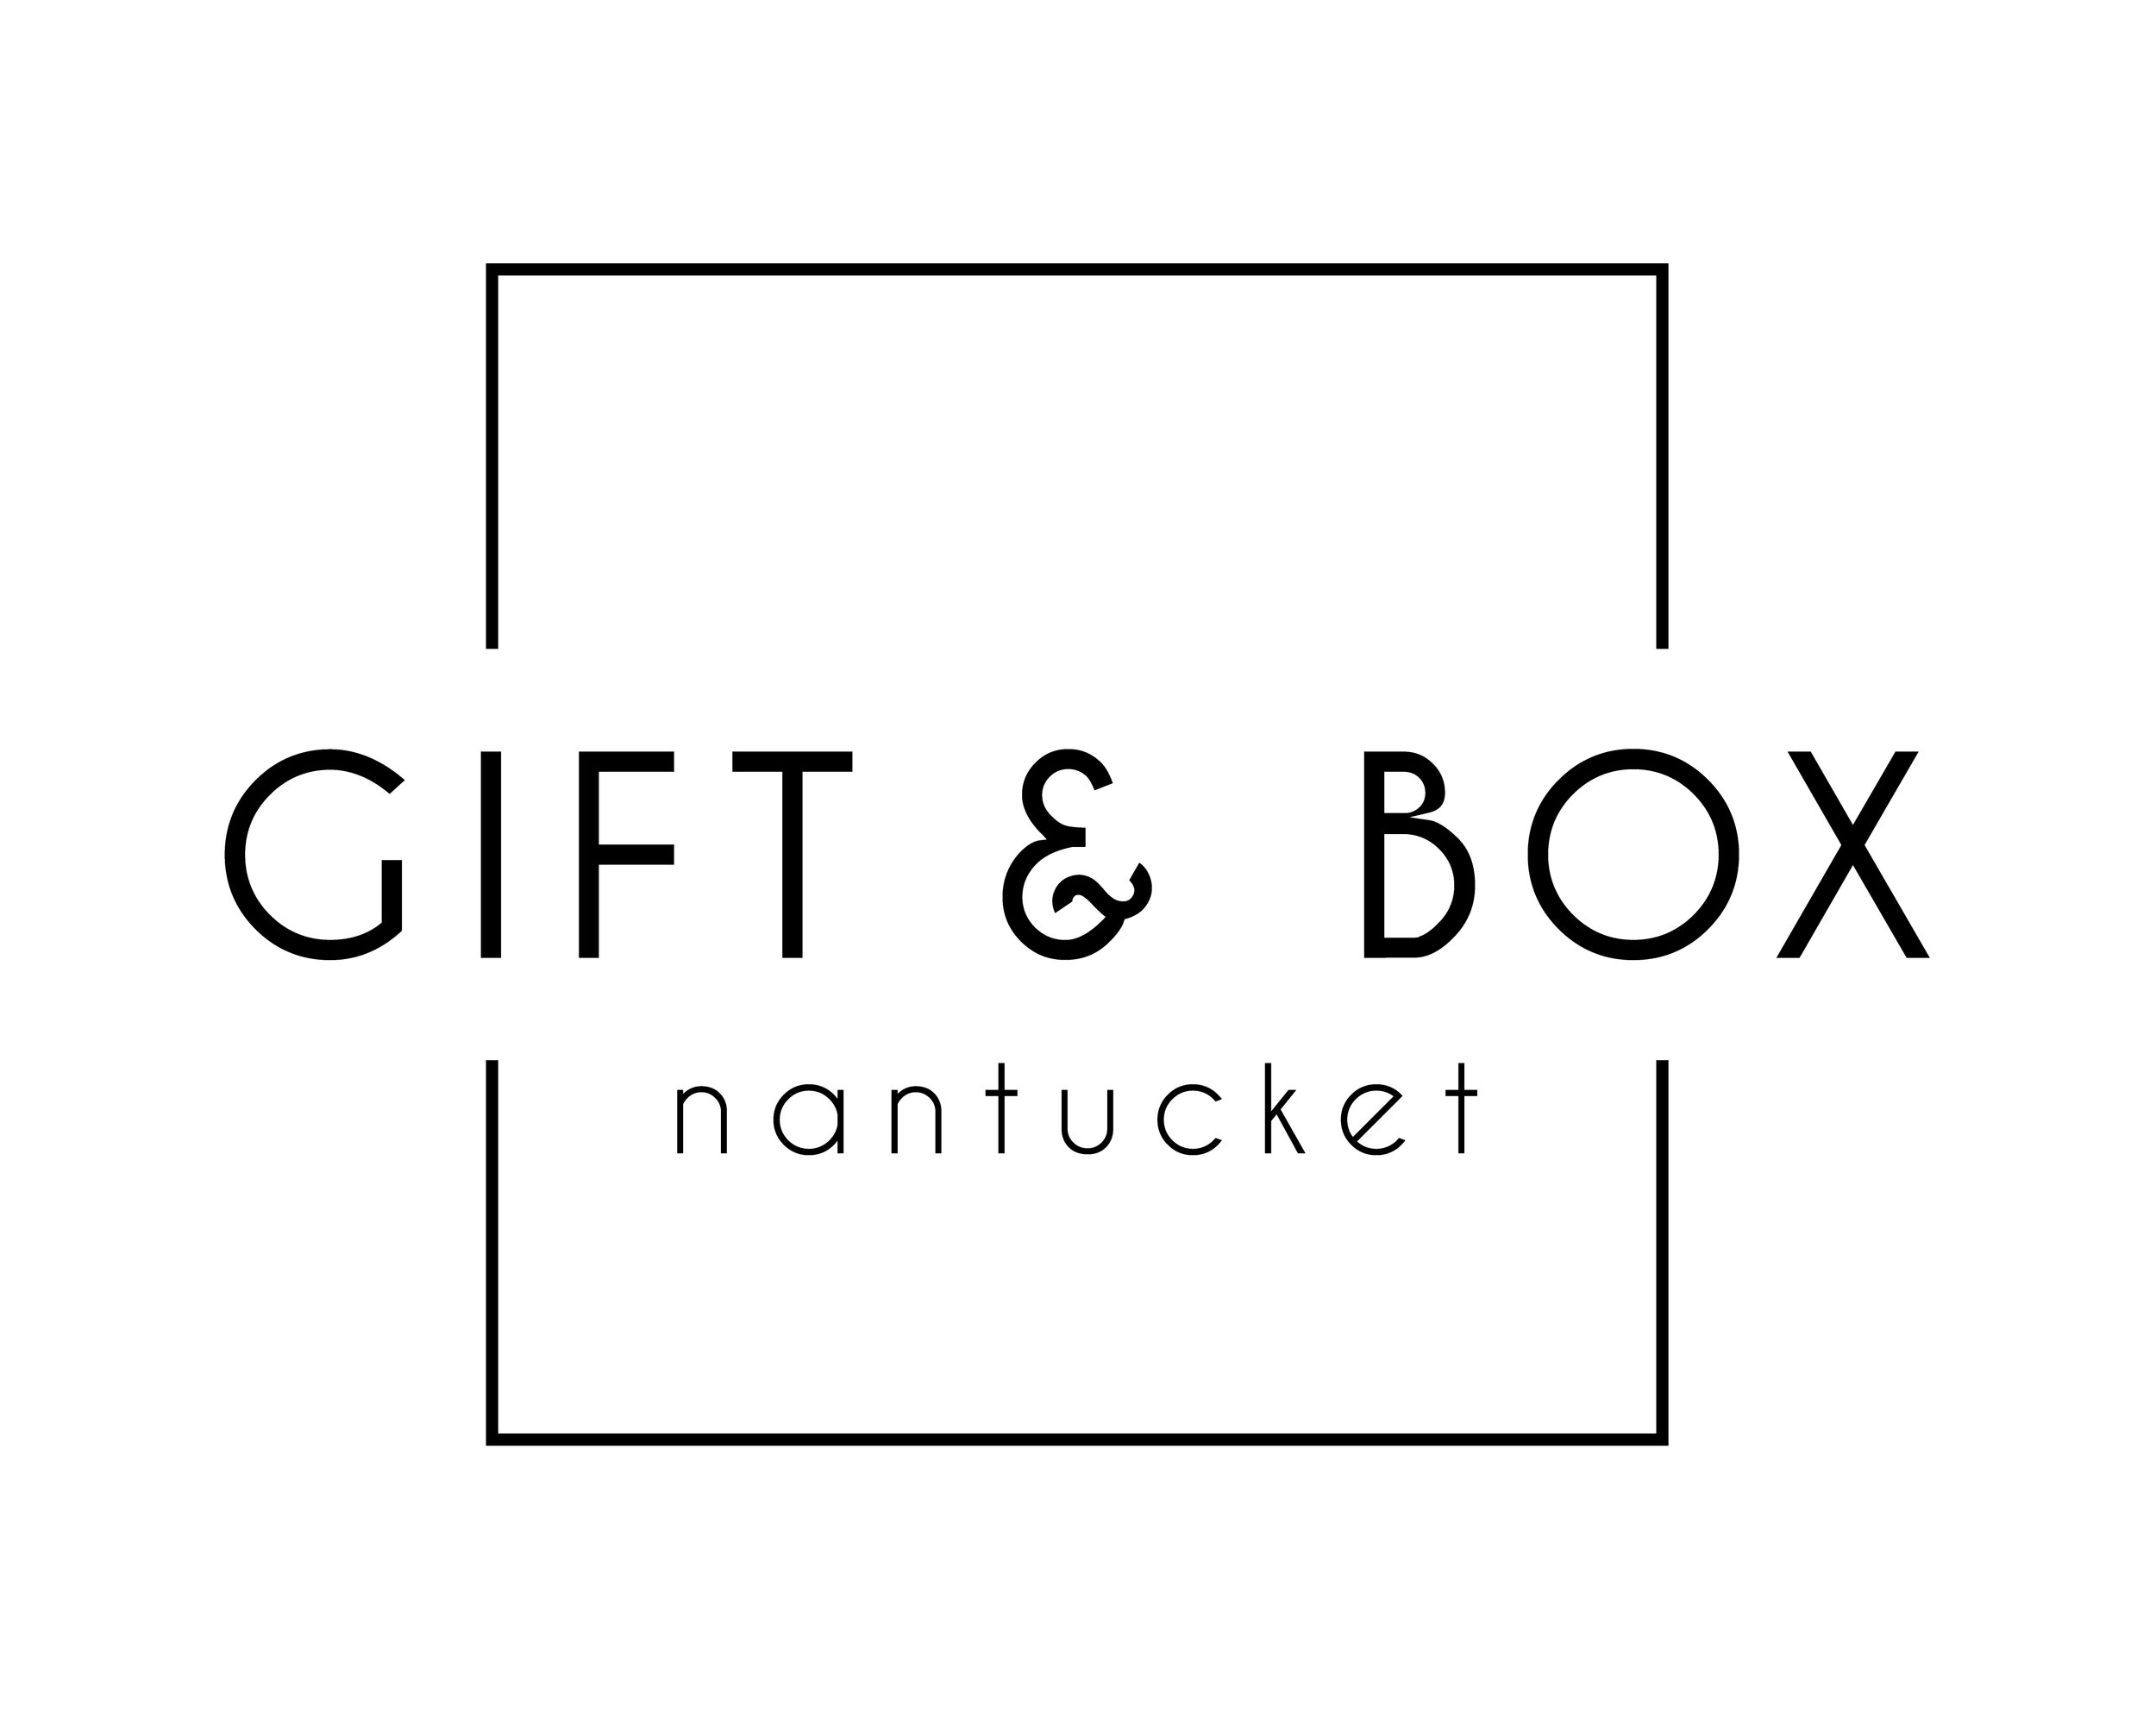 Gift and Box Nantucket